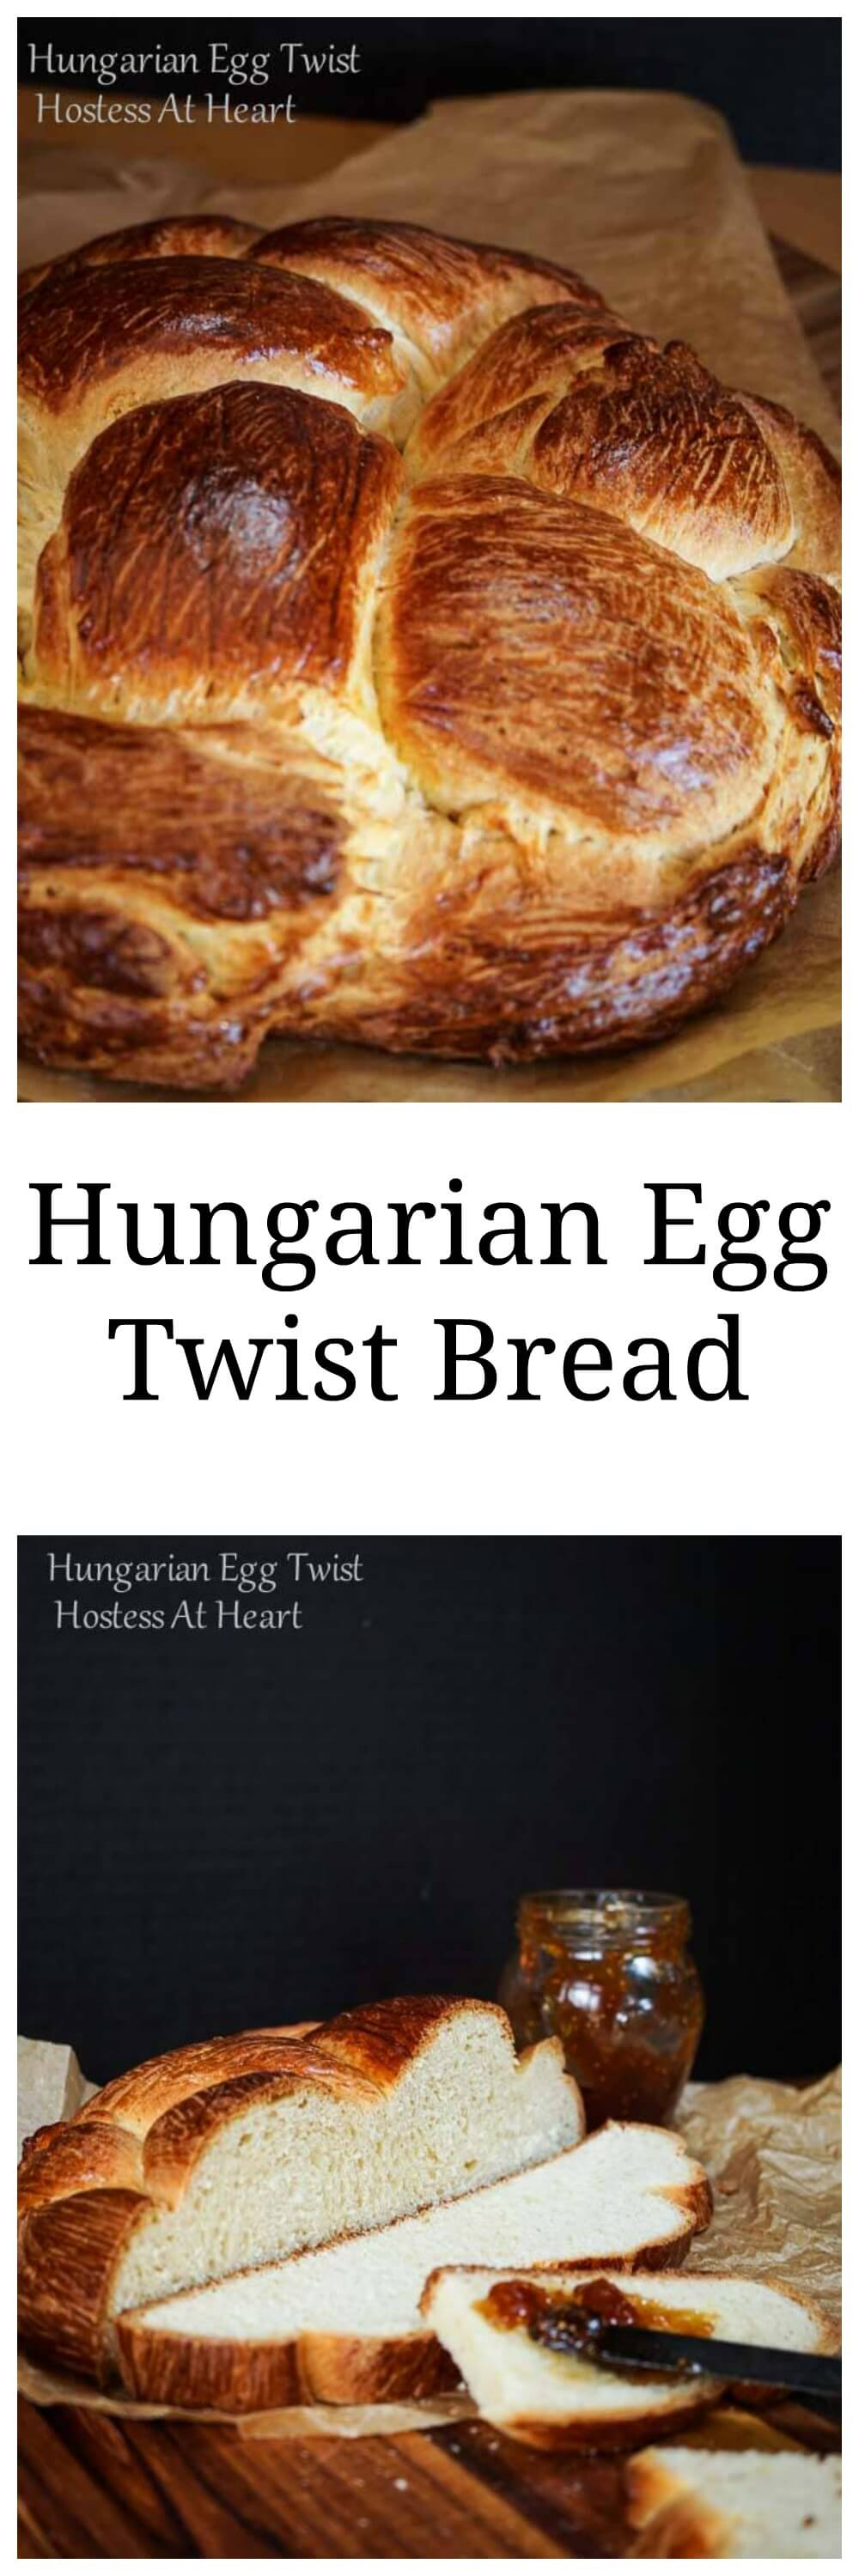 Hungarian Egg Twist bread is perfect for everyday or dressed up for a special occasion. You can sprinkle in nuts and dried fruit or other additions to this sweetened bread or eat it as is. | HostessAtHeart.com